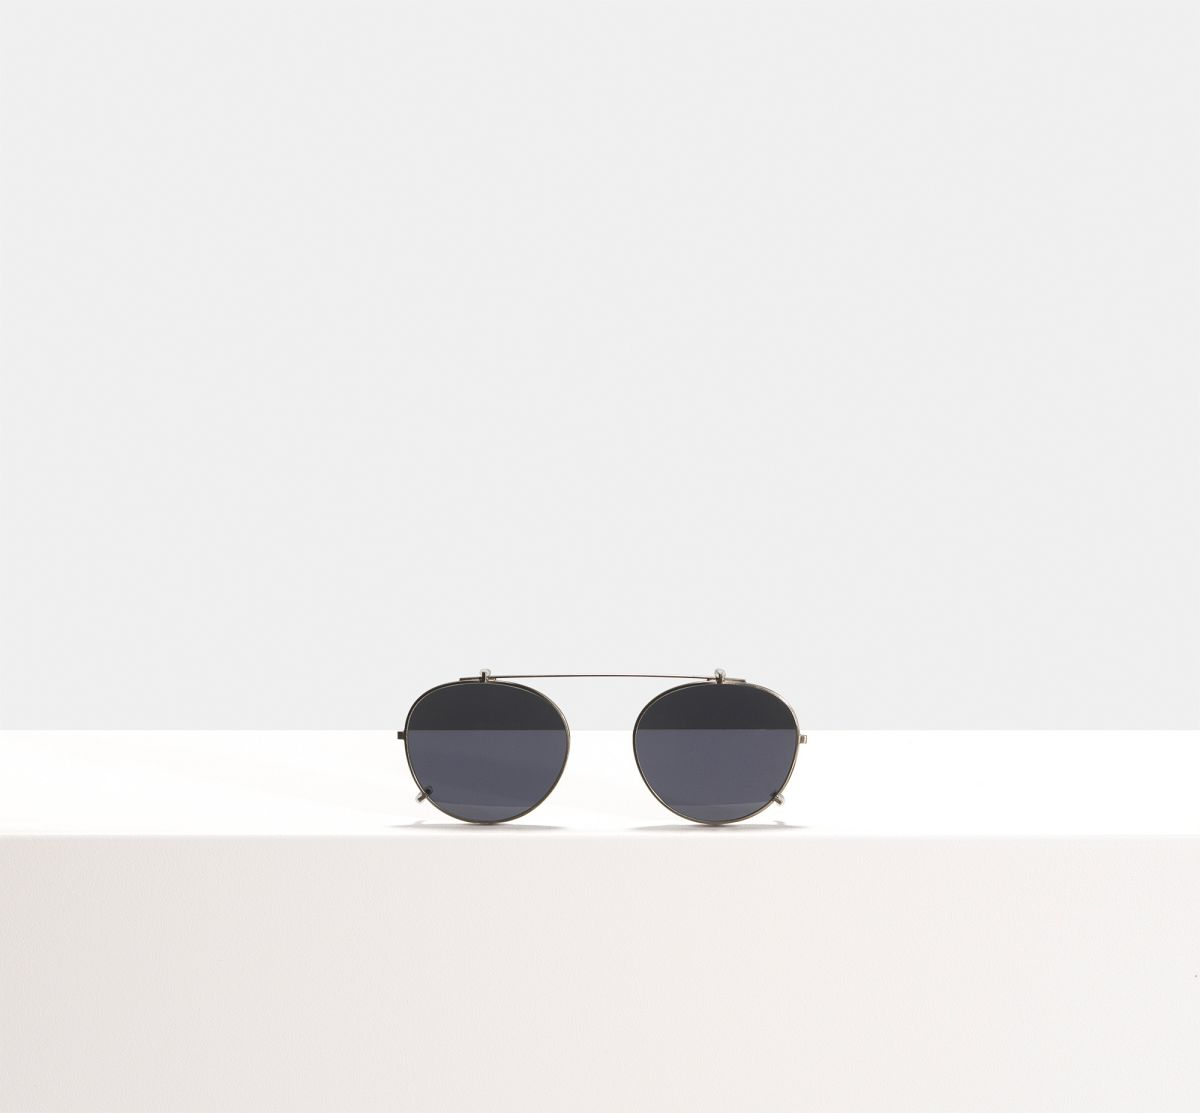 Max clip-on round metal glasses in Gunmetal by Ace & Tate